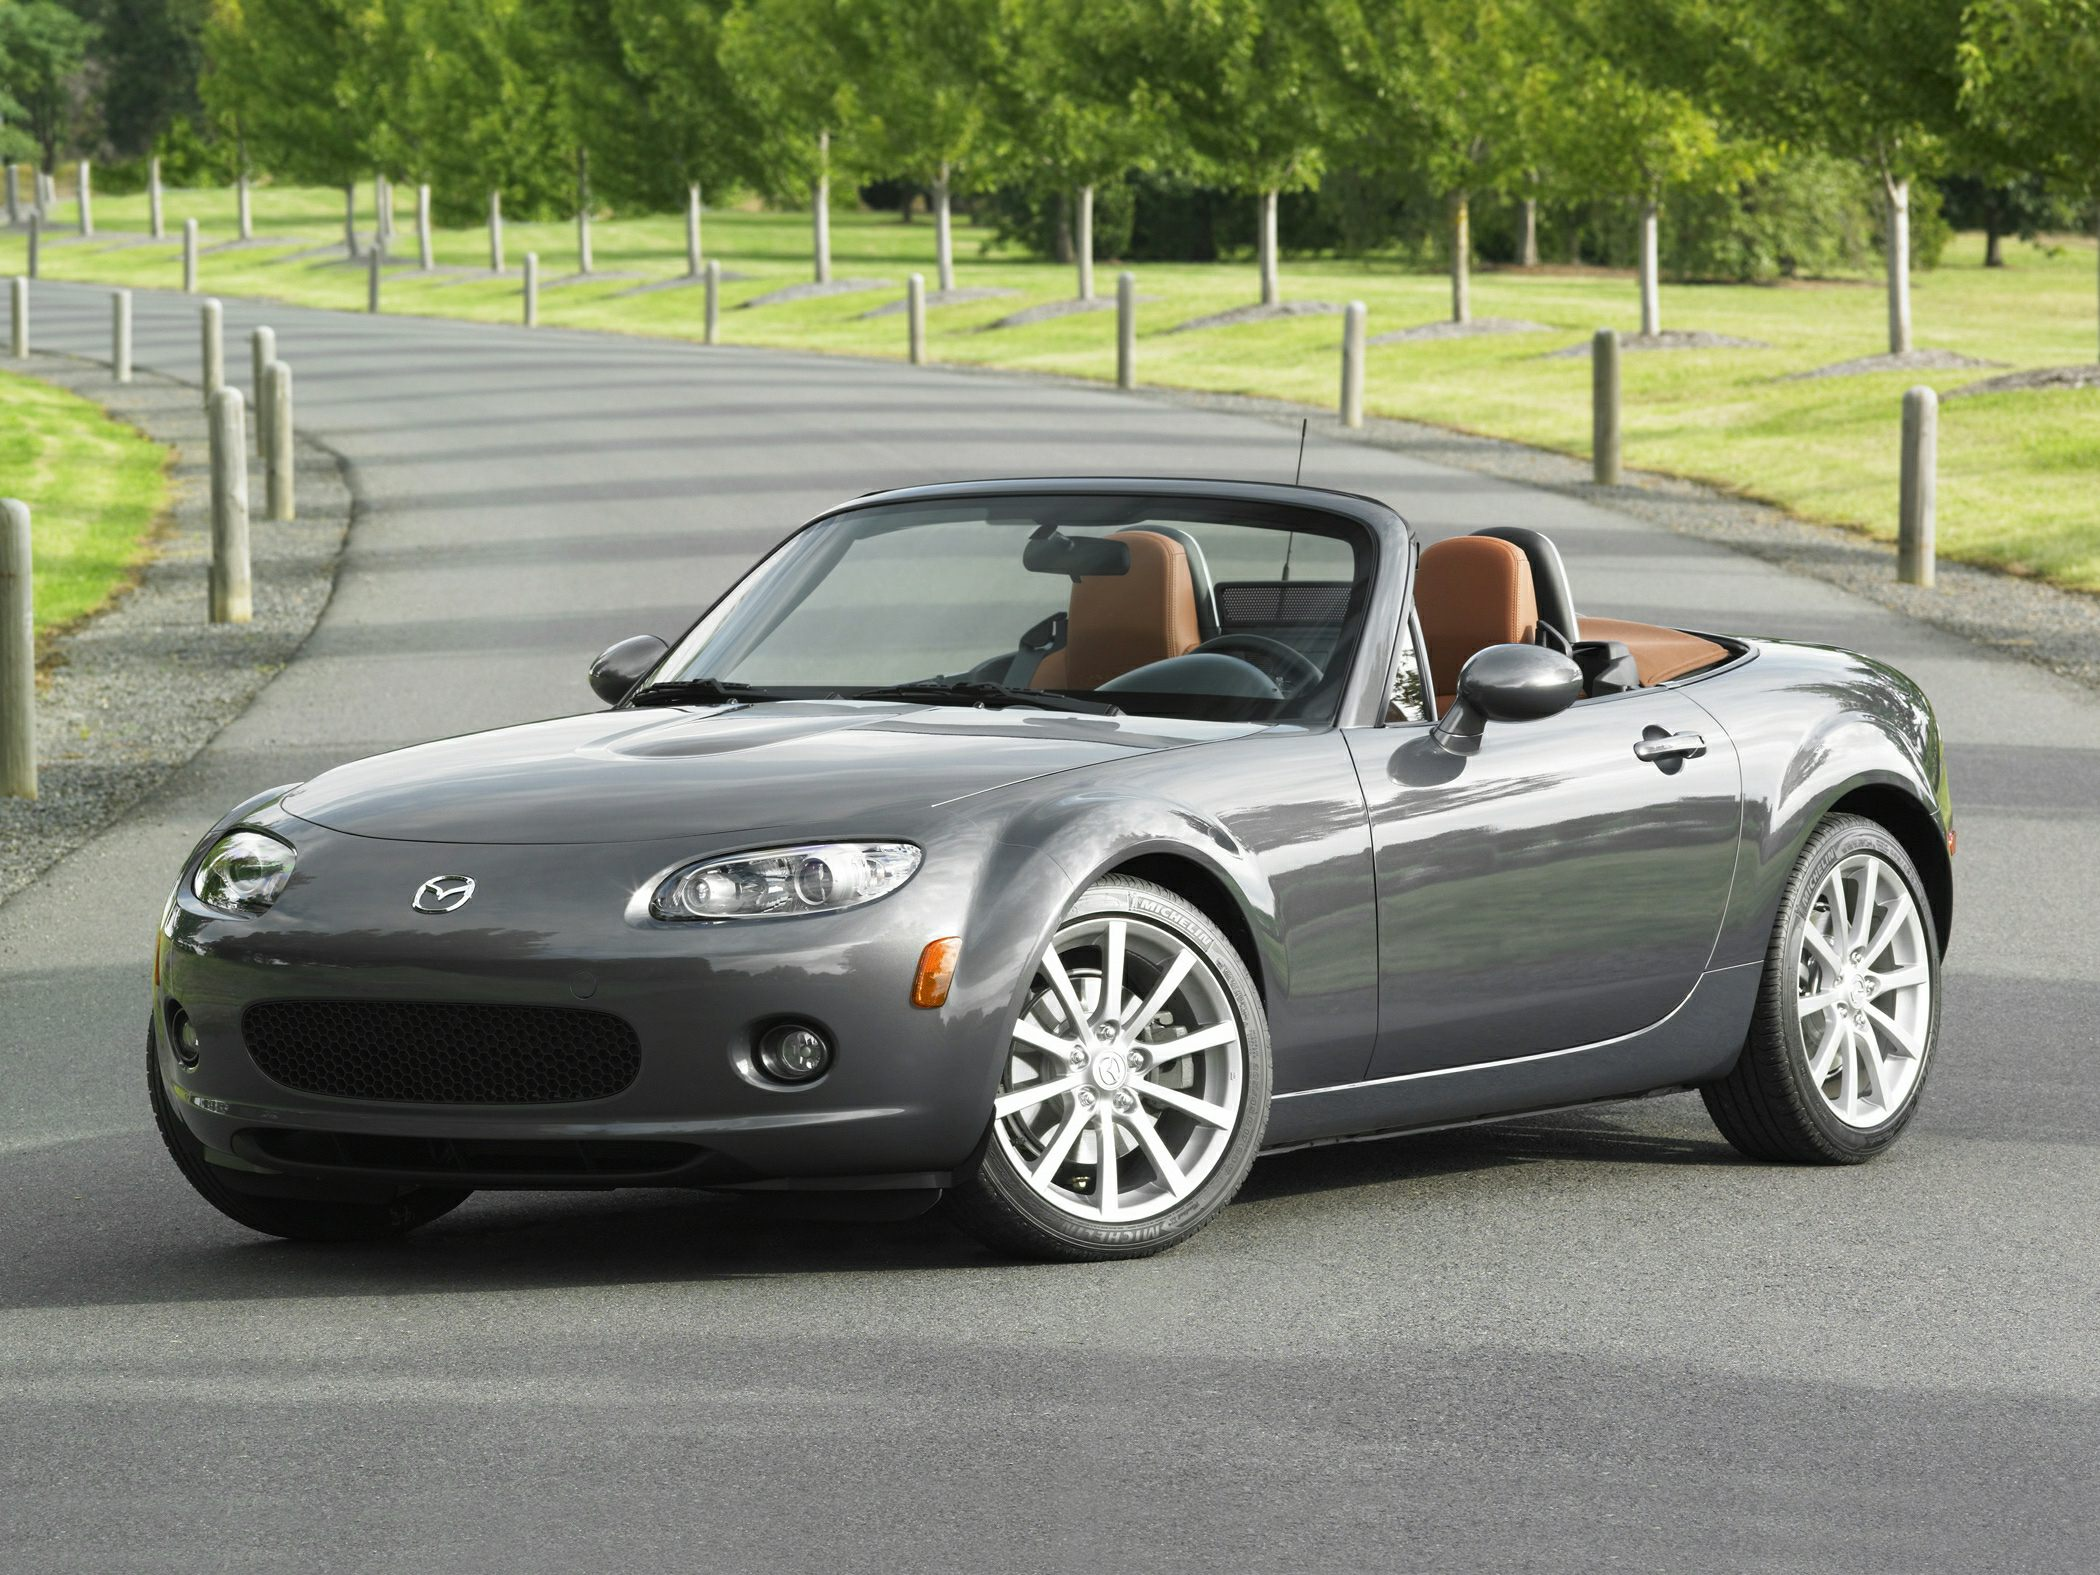 2007 mazda mx 5 information. Black Bedroom Furniture Sets. Home Design Ideas